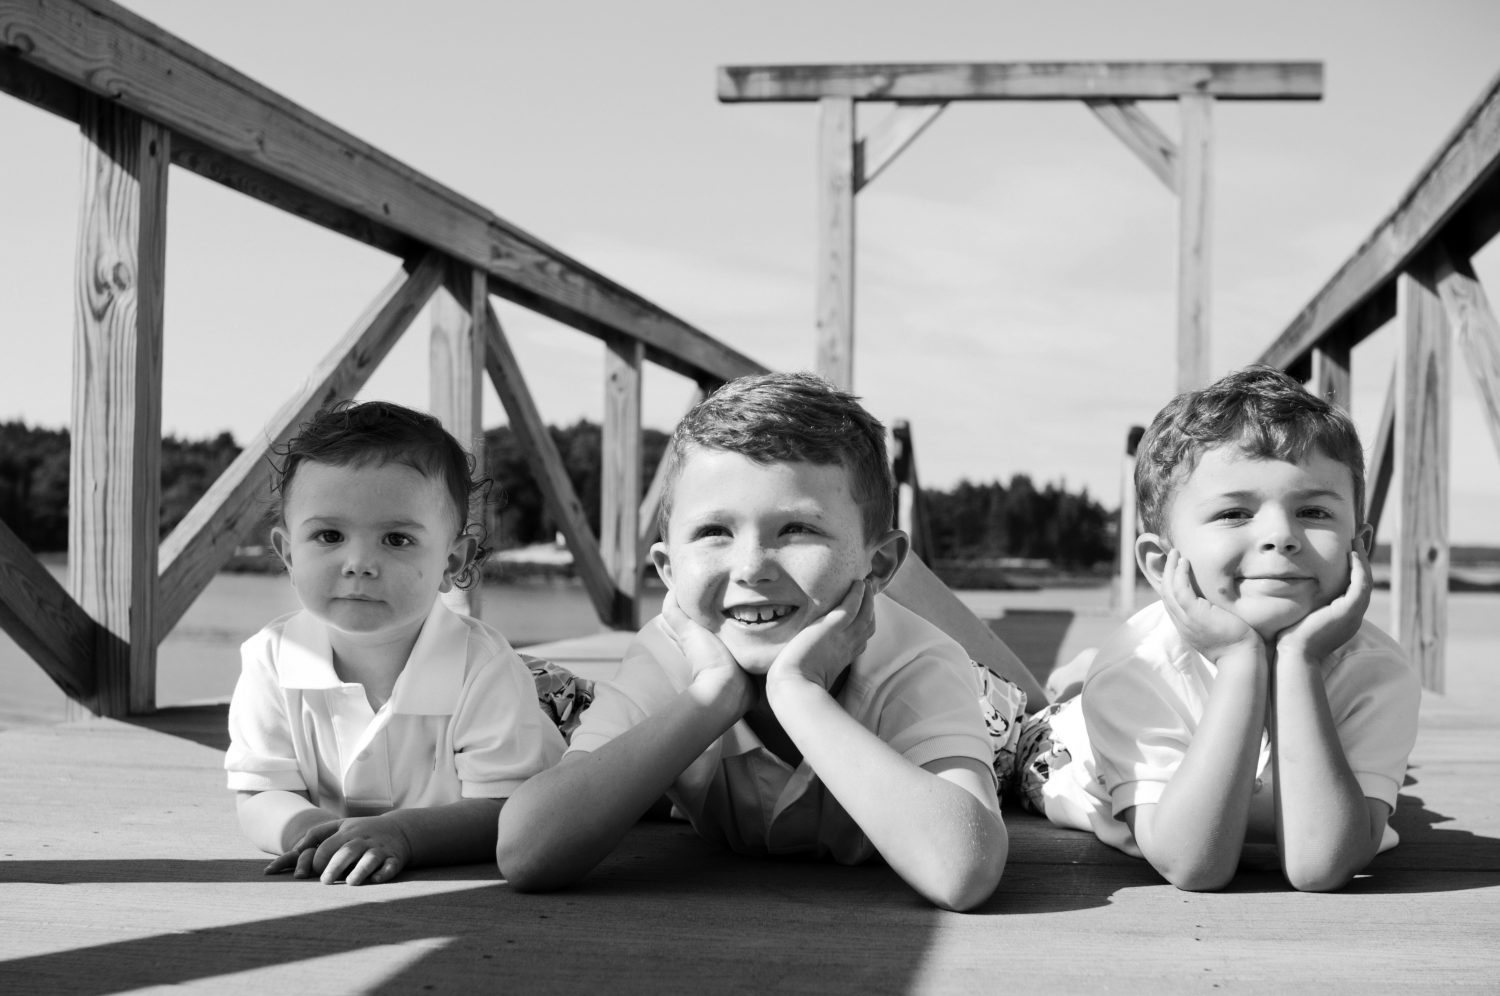 Portrait of three young boys laying on their bellies on a dock at the coast